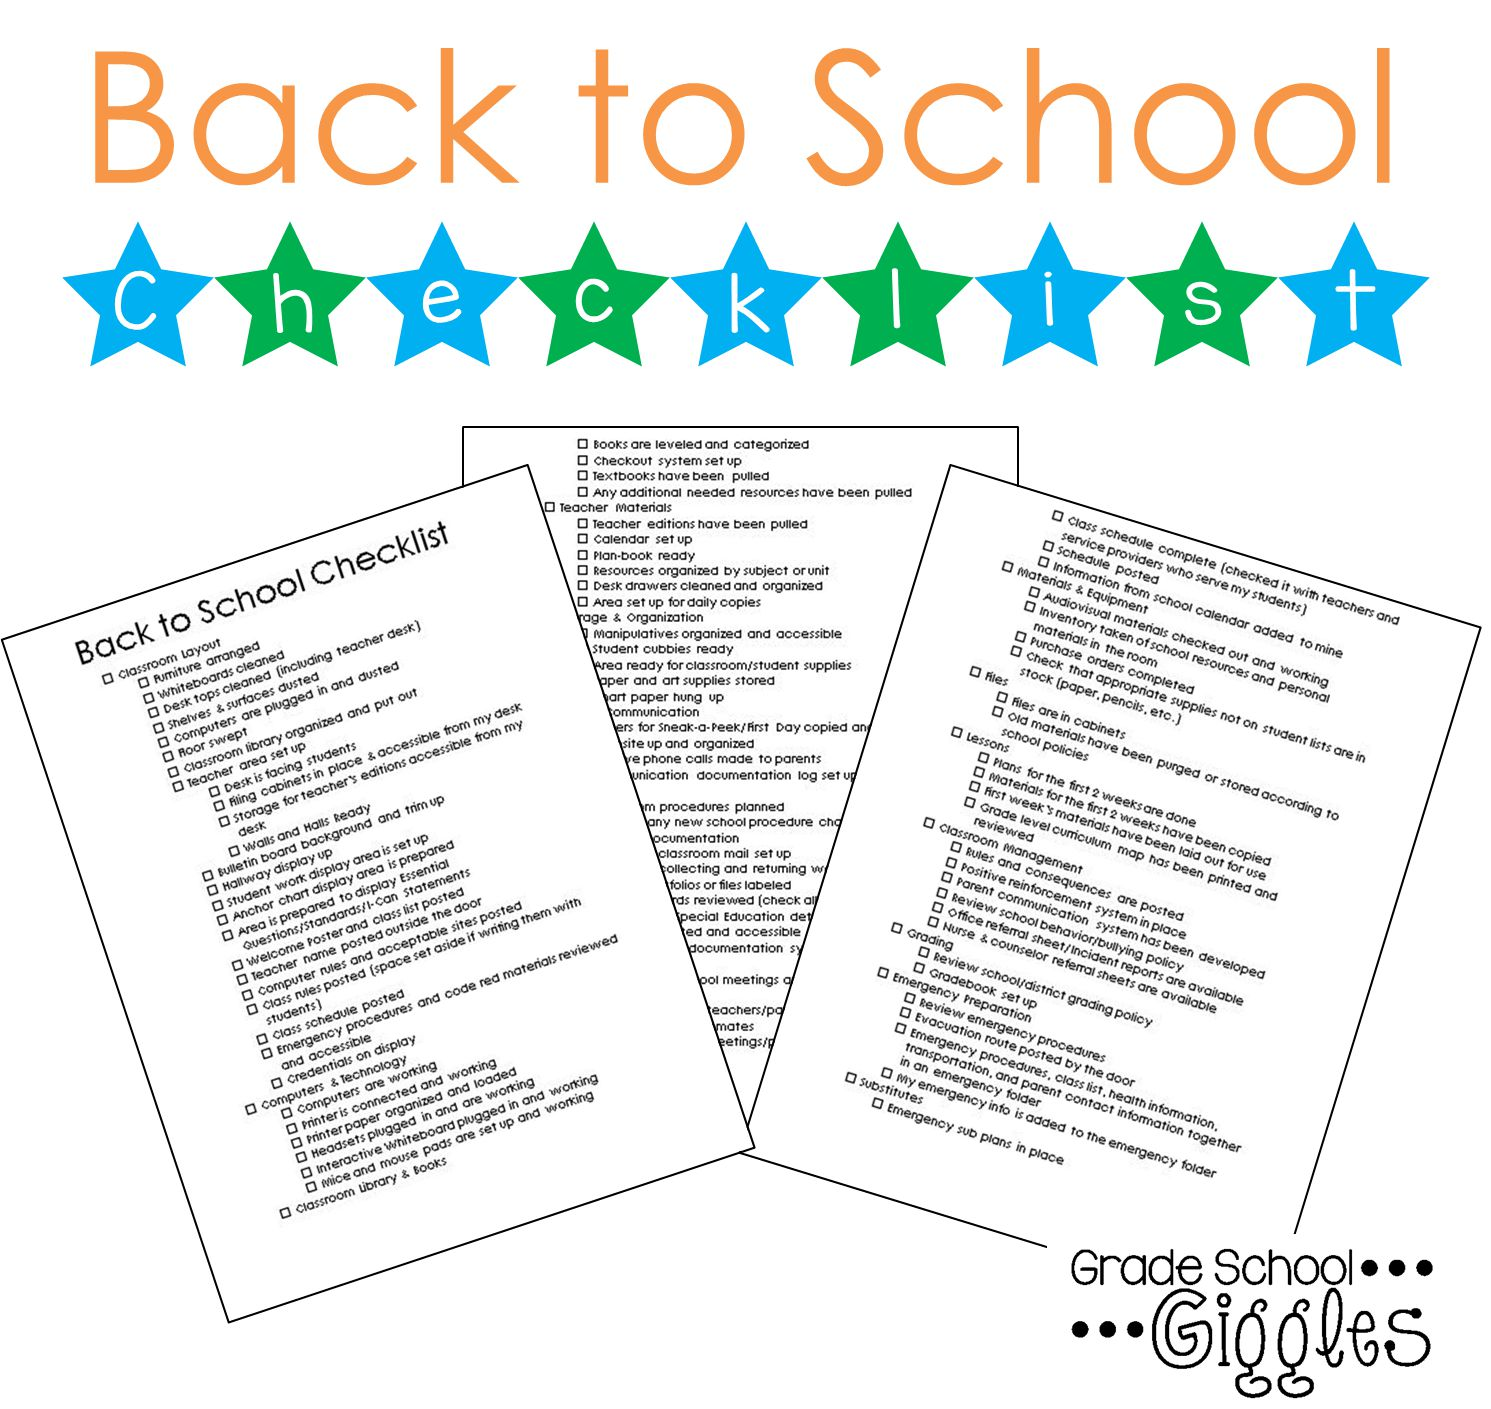 This editable back to school checklist will make it easy to stay organized in pre-planning.